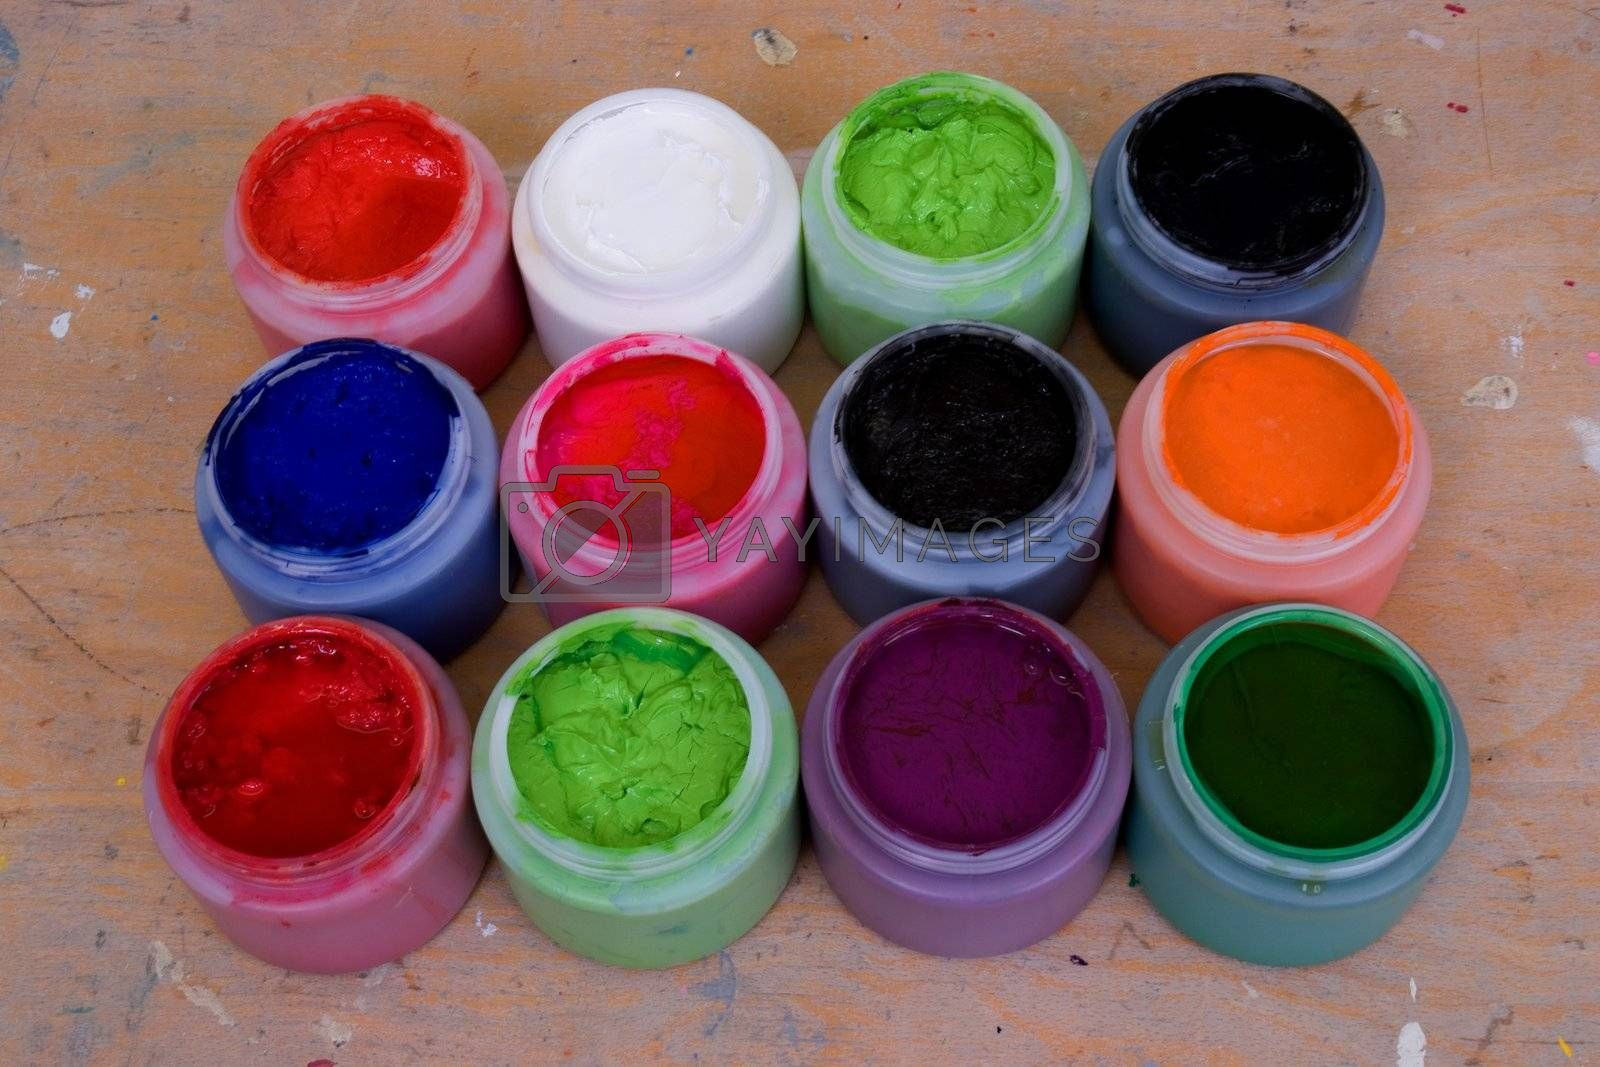 Twelve tubs of acrylic paint on a work bench